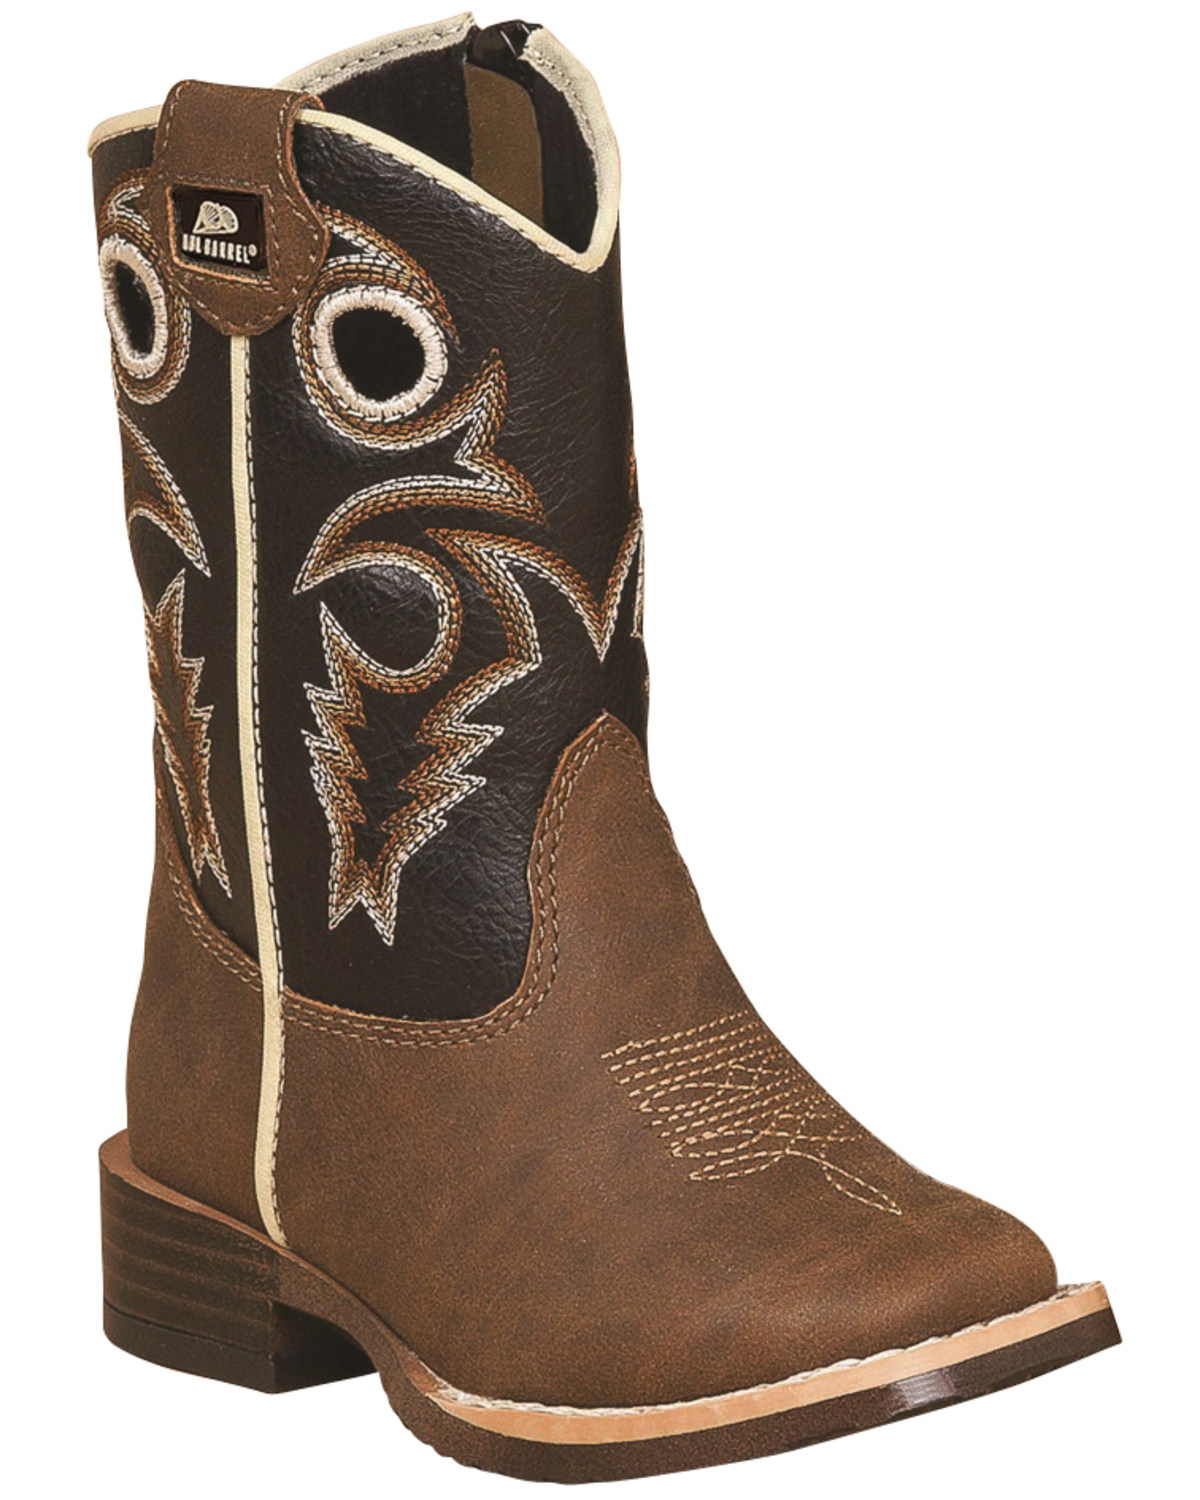 Where To Buy Childrens Cowboy Boots